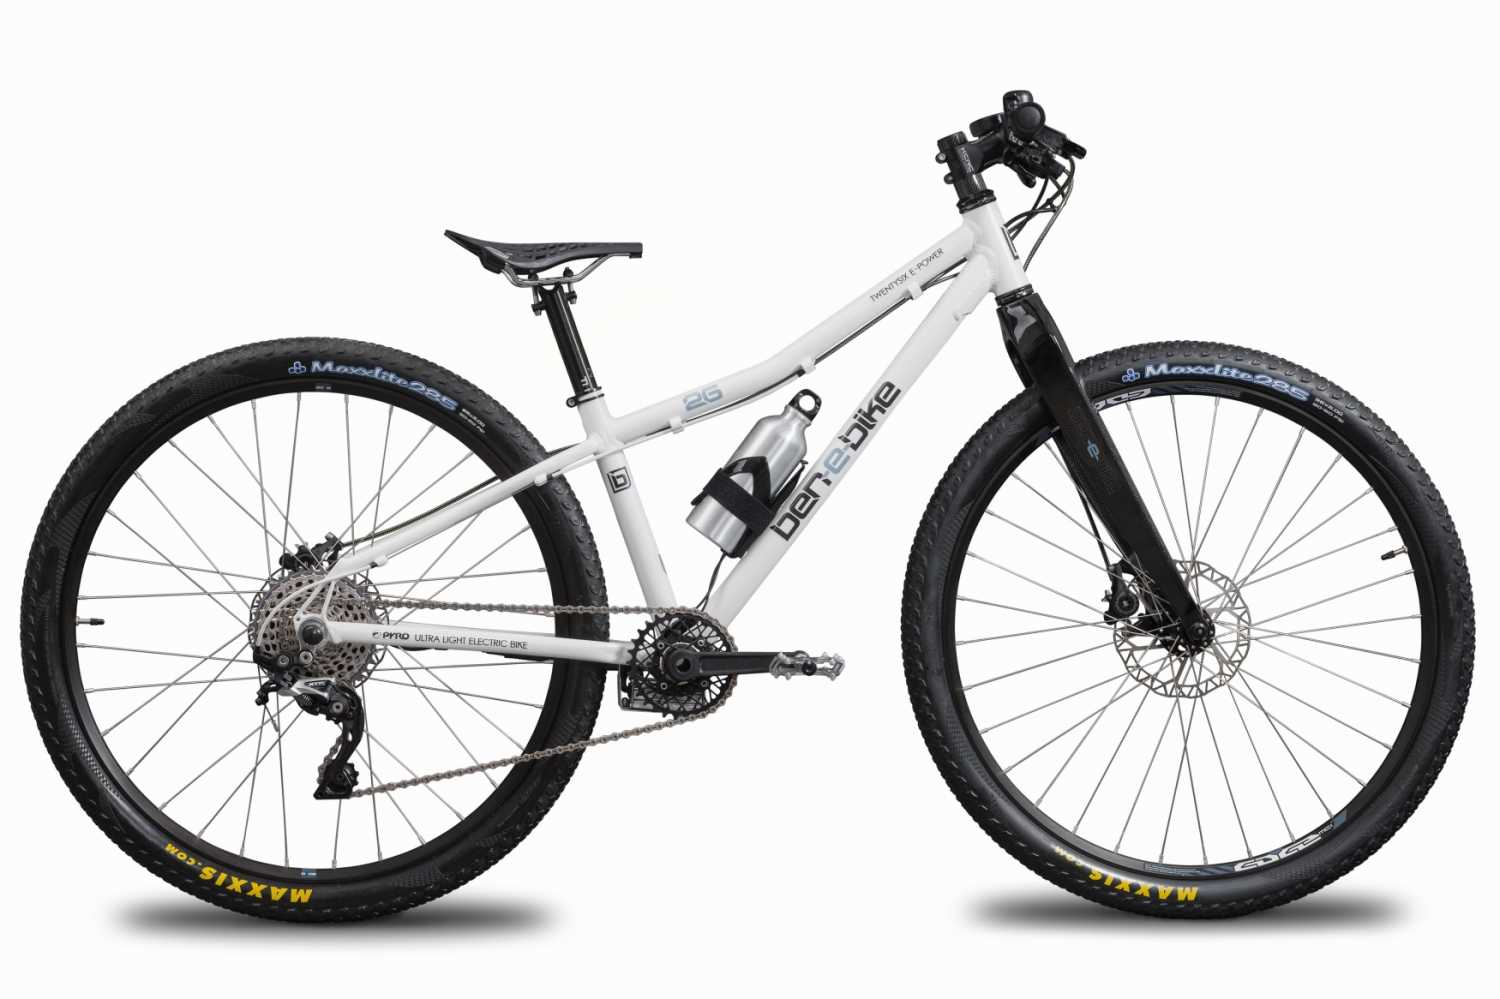 twentysix-e-power-race-ben-e-bikes.jpg